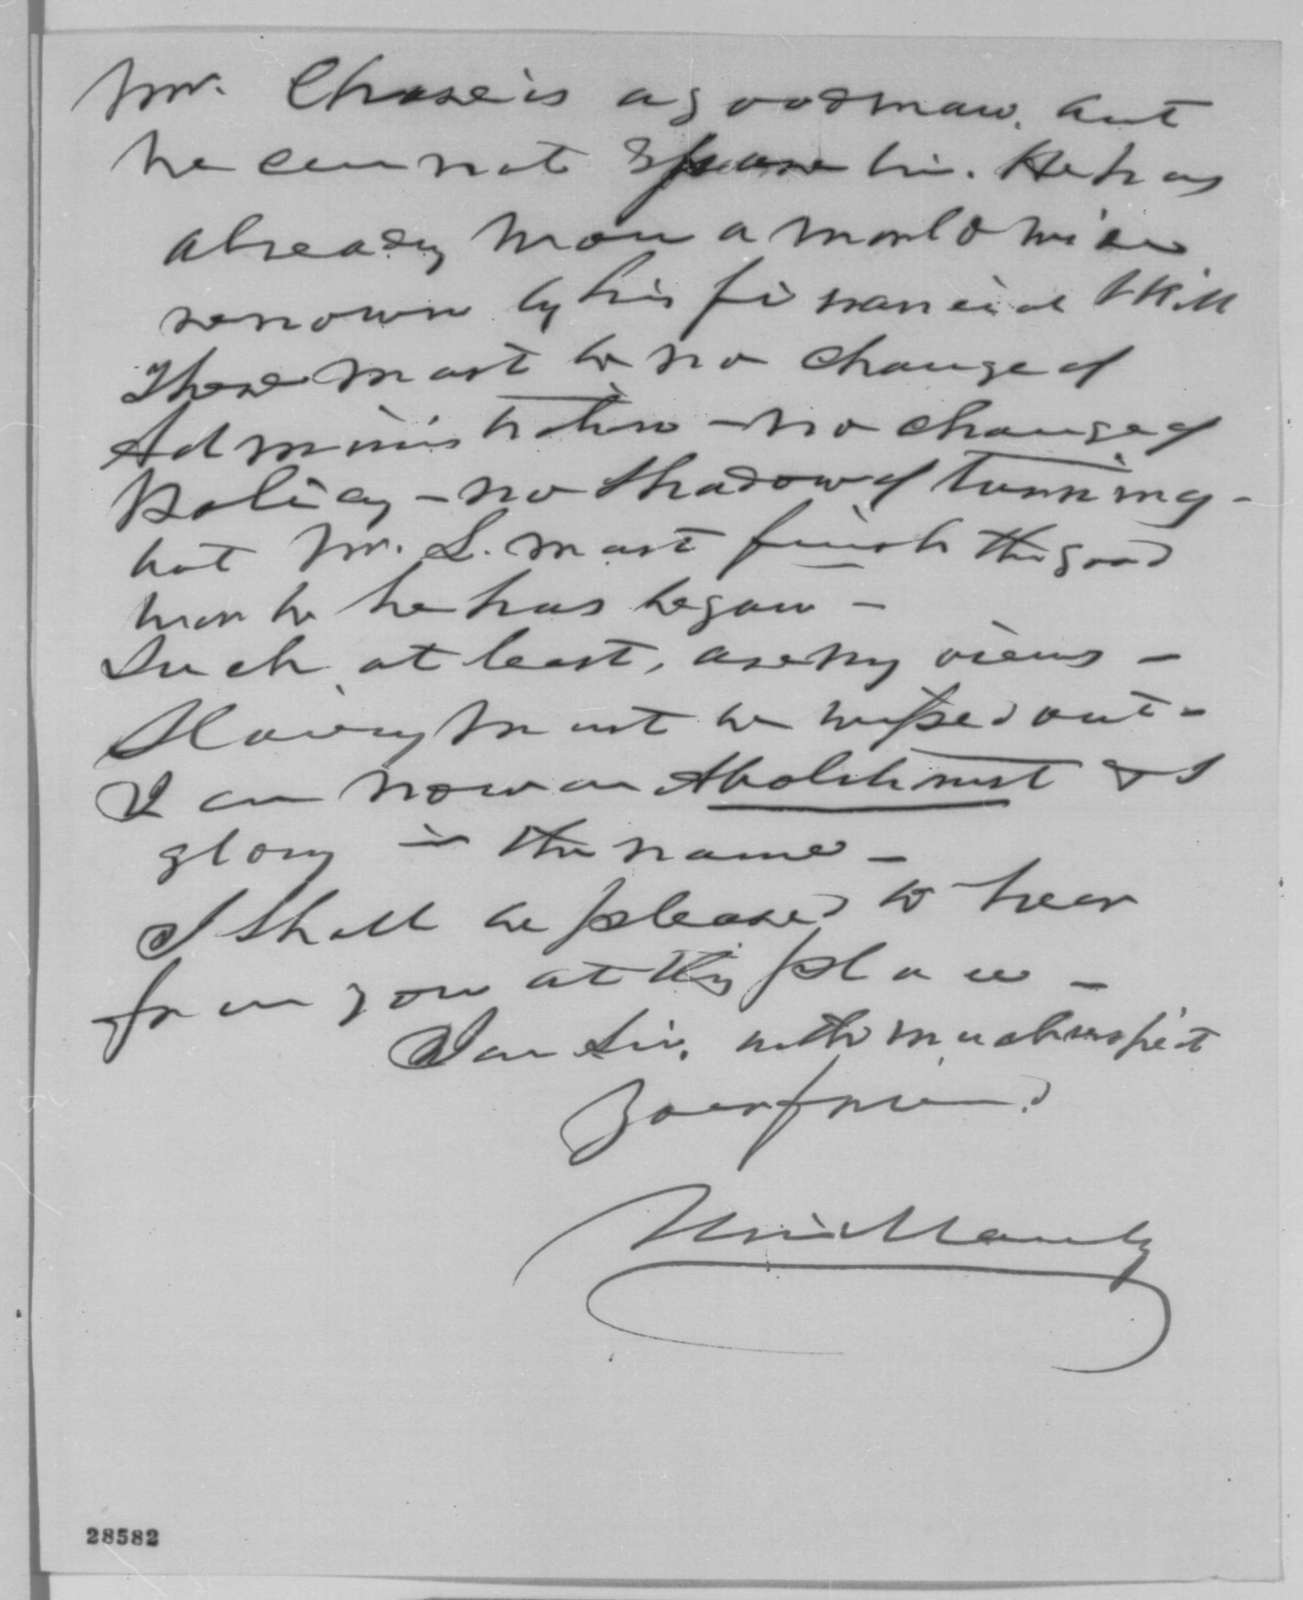 Uri Manly to William P. Dole, Wednesday, December 09, 1863  (Appointment and 1864 presidential election)